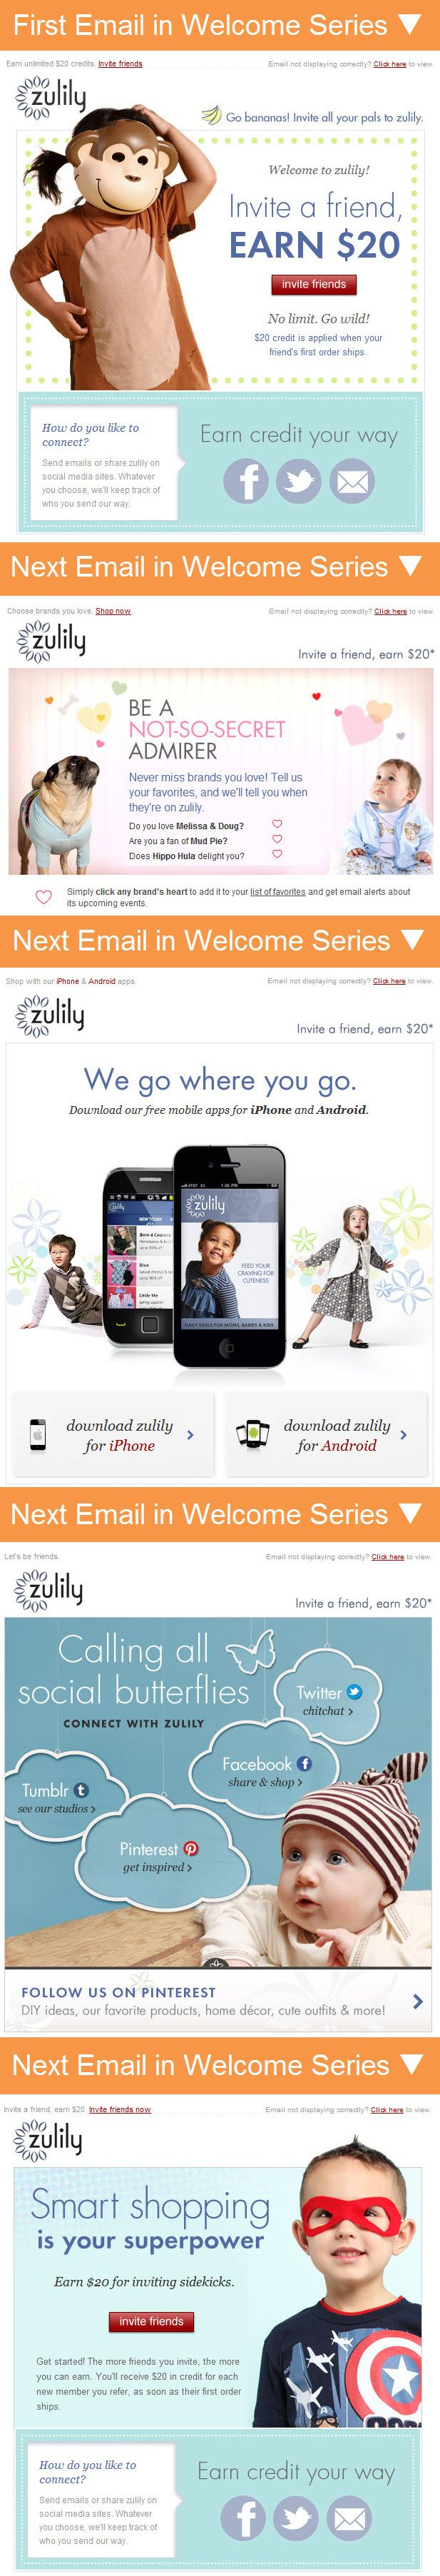 Zulily >> sent Q1 2013 >> One of the longest welcome series I've seen, this 5-email series from Zulily seeks a closer relationship with new subscribers by asking for referrals, asking about their favorite brands, and promoting their mobile app and social presence. –Andrea Smith, Design Lead, Content Marketing & Research